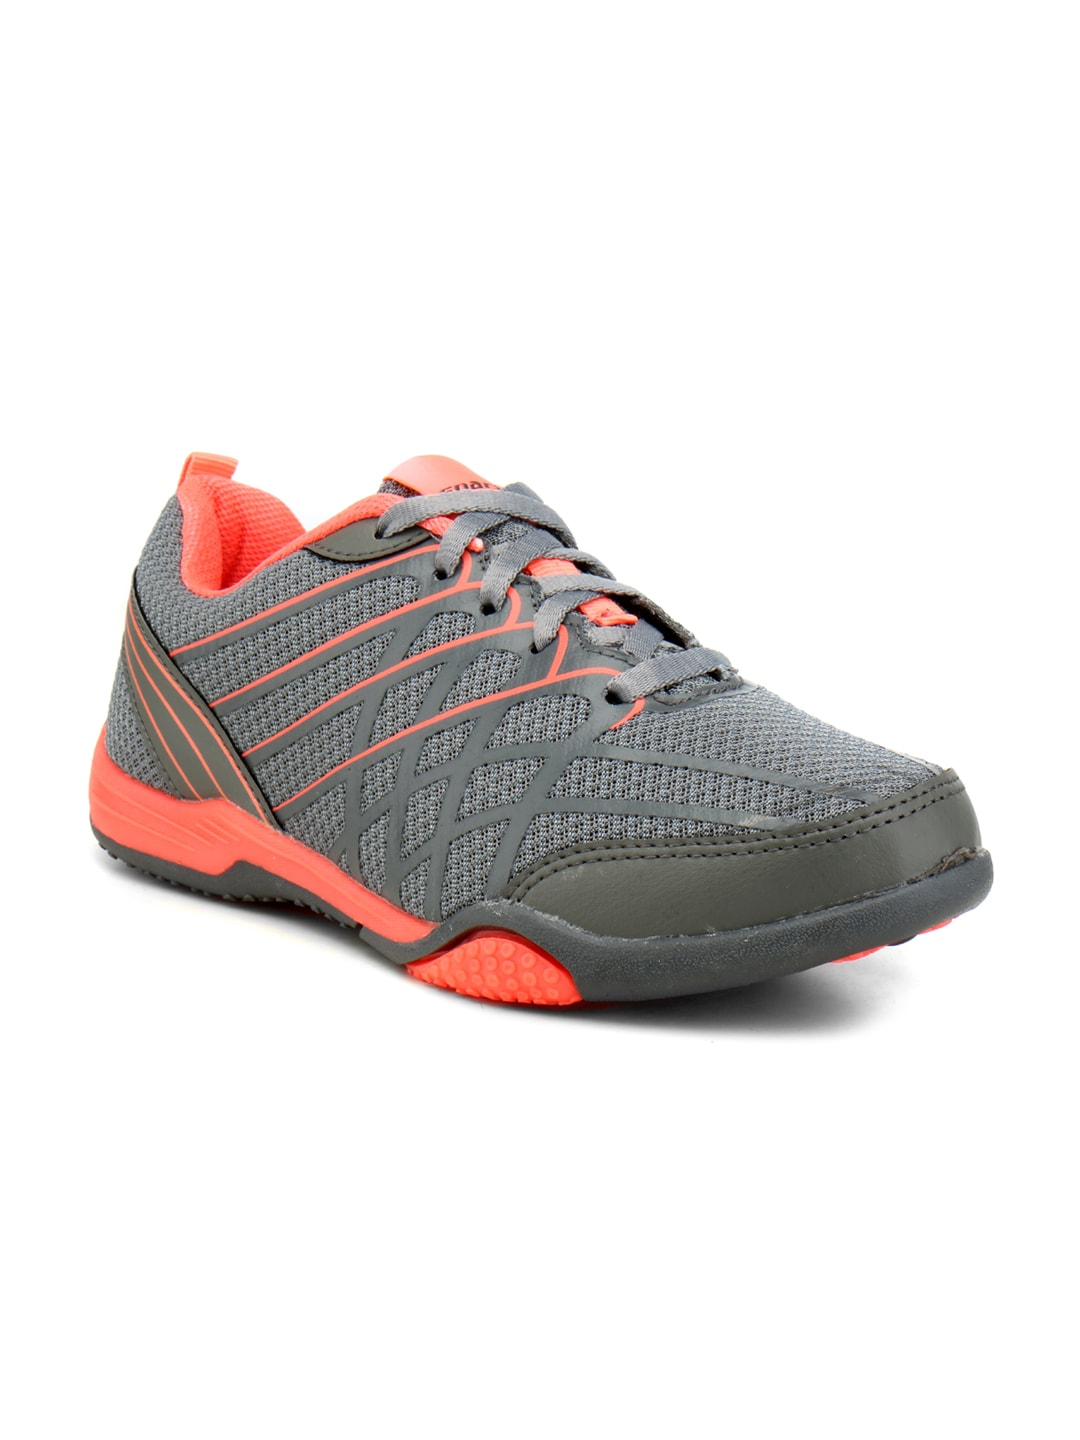 ff1b101d0 Sparx Shoes - Buy Sparx Shoes for Men Online in India